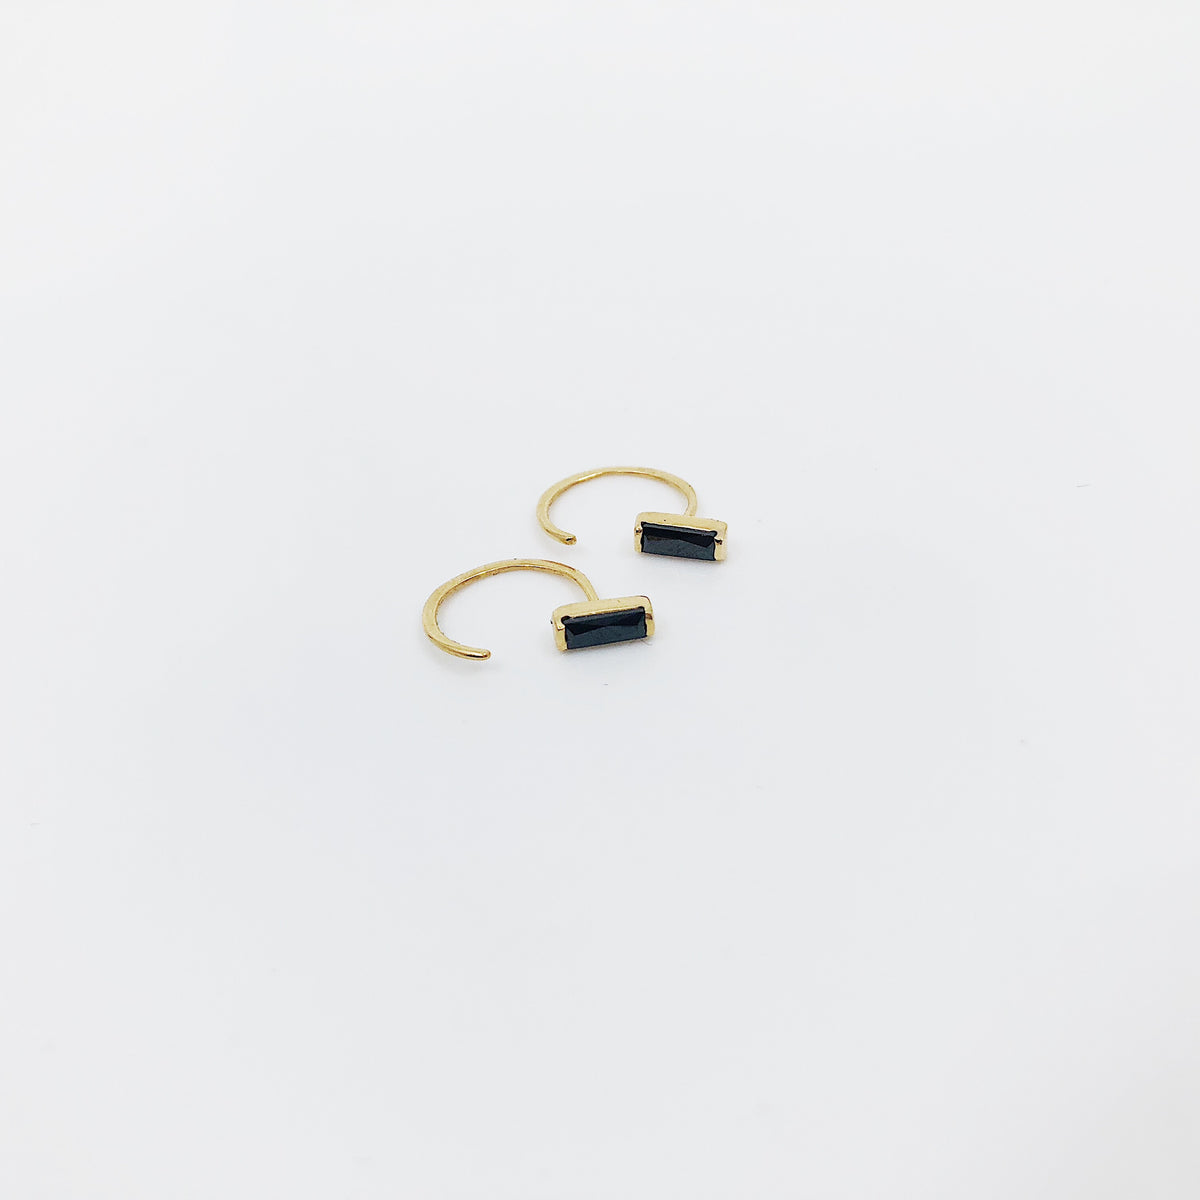 Black Baguette Cut Hugger Earring - Single